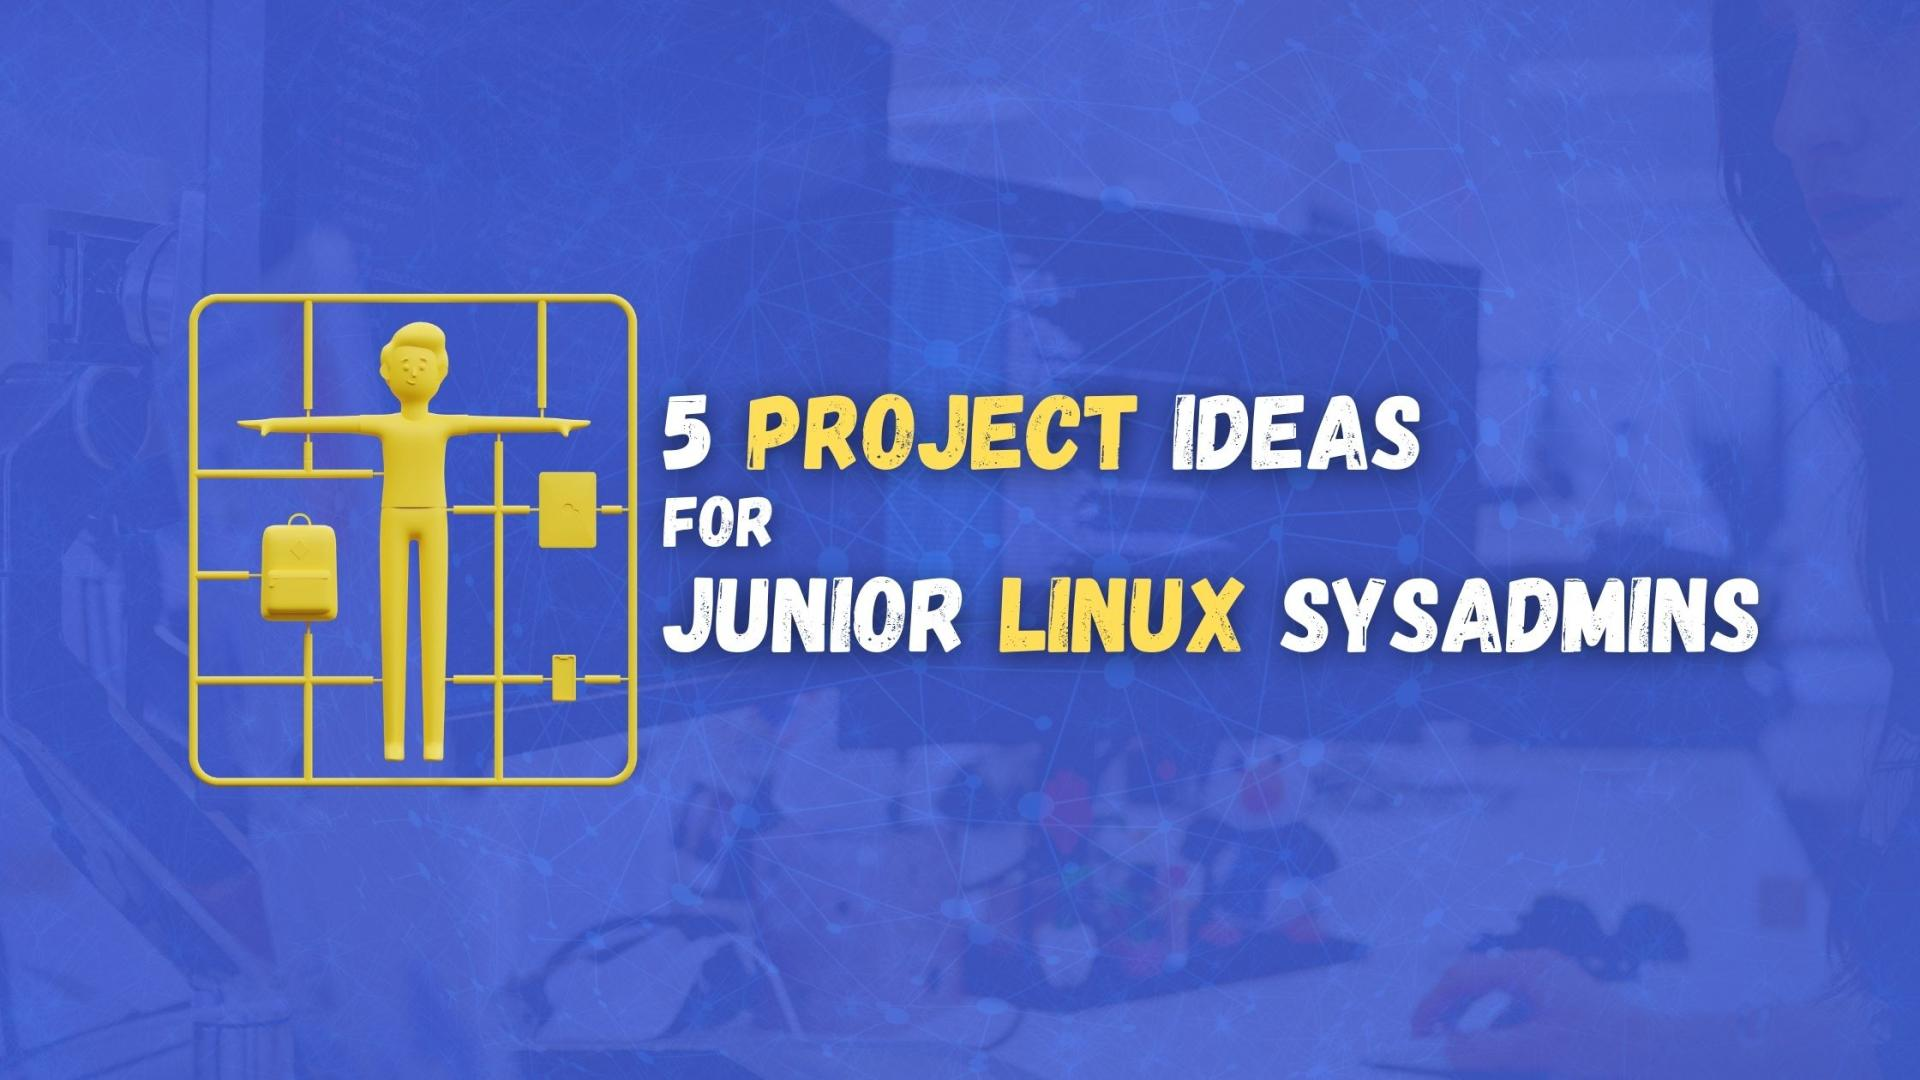 5 Project Ideas for Junior Linux System Administrators